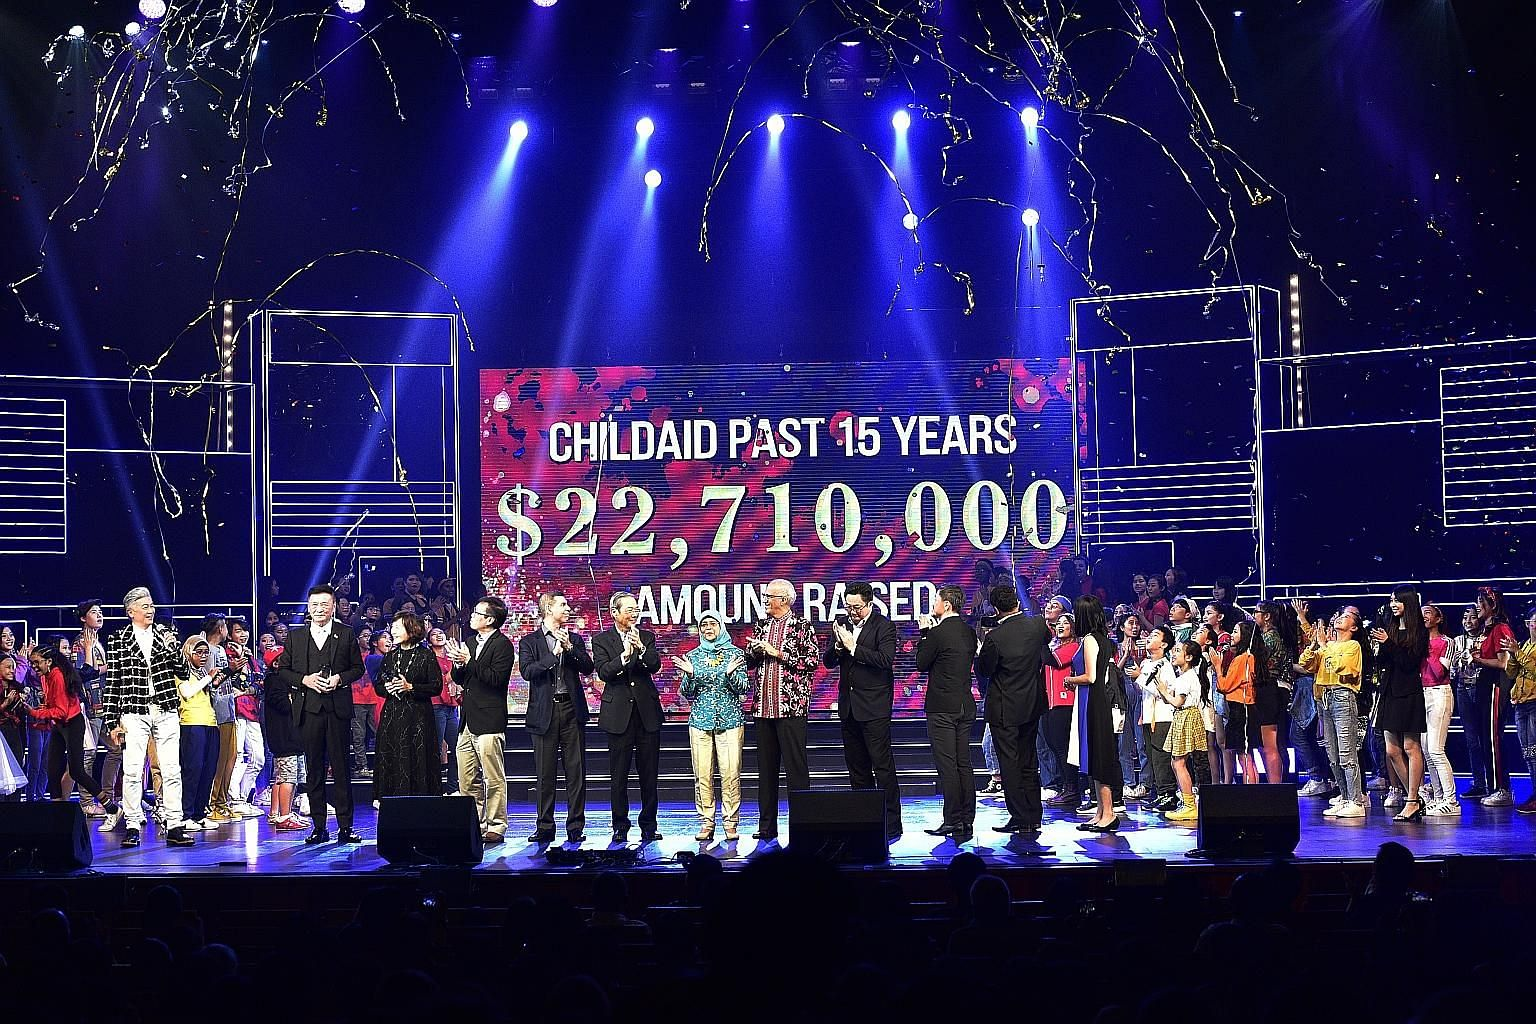 President Halimah Yacob and her husband, Mr Mohamed Abdullah Alhabshee, at the ChildAid 2019 event which raised $2.12 million for charity this year. With them on stage last night were the show's performers, its creative director Dick Lee, Singapore P